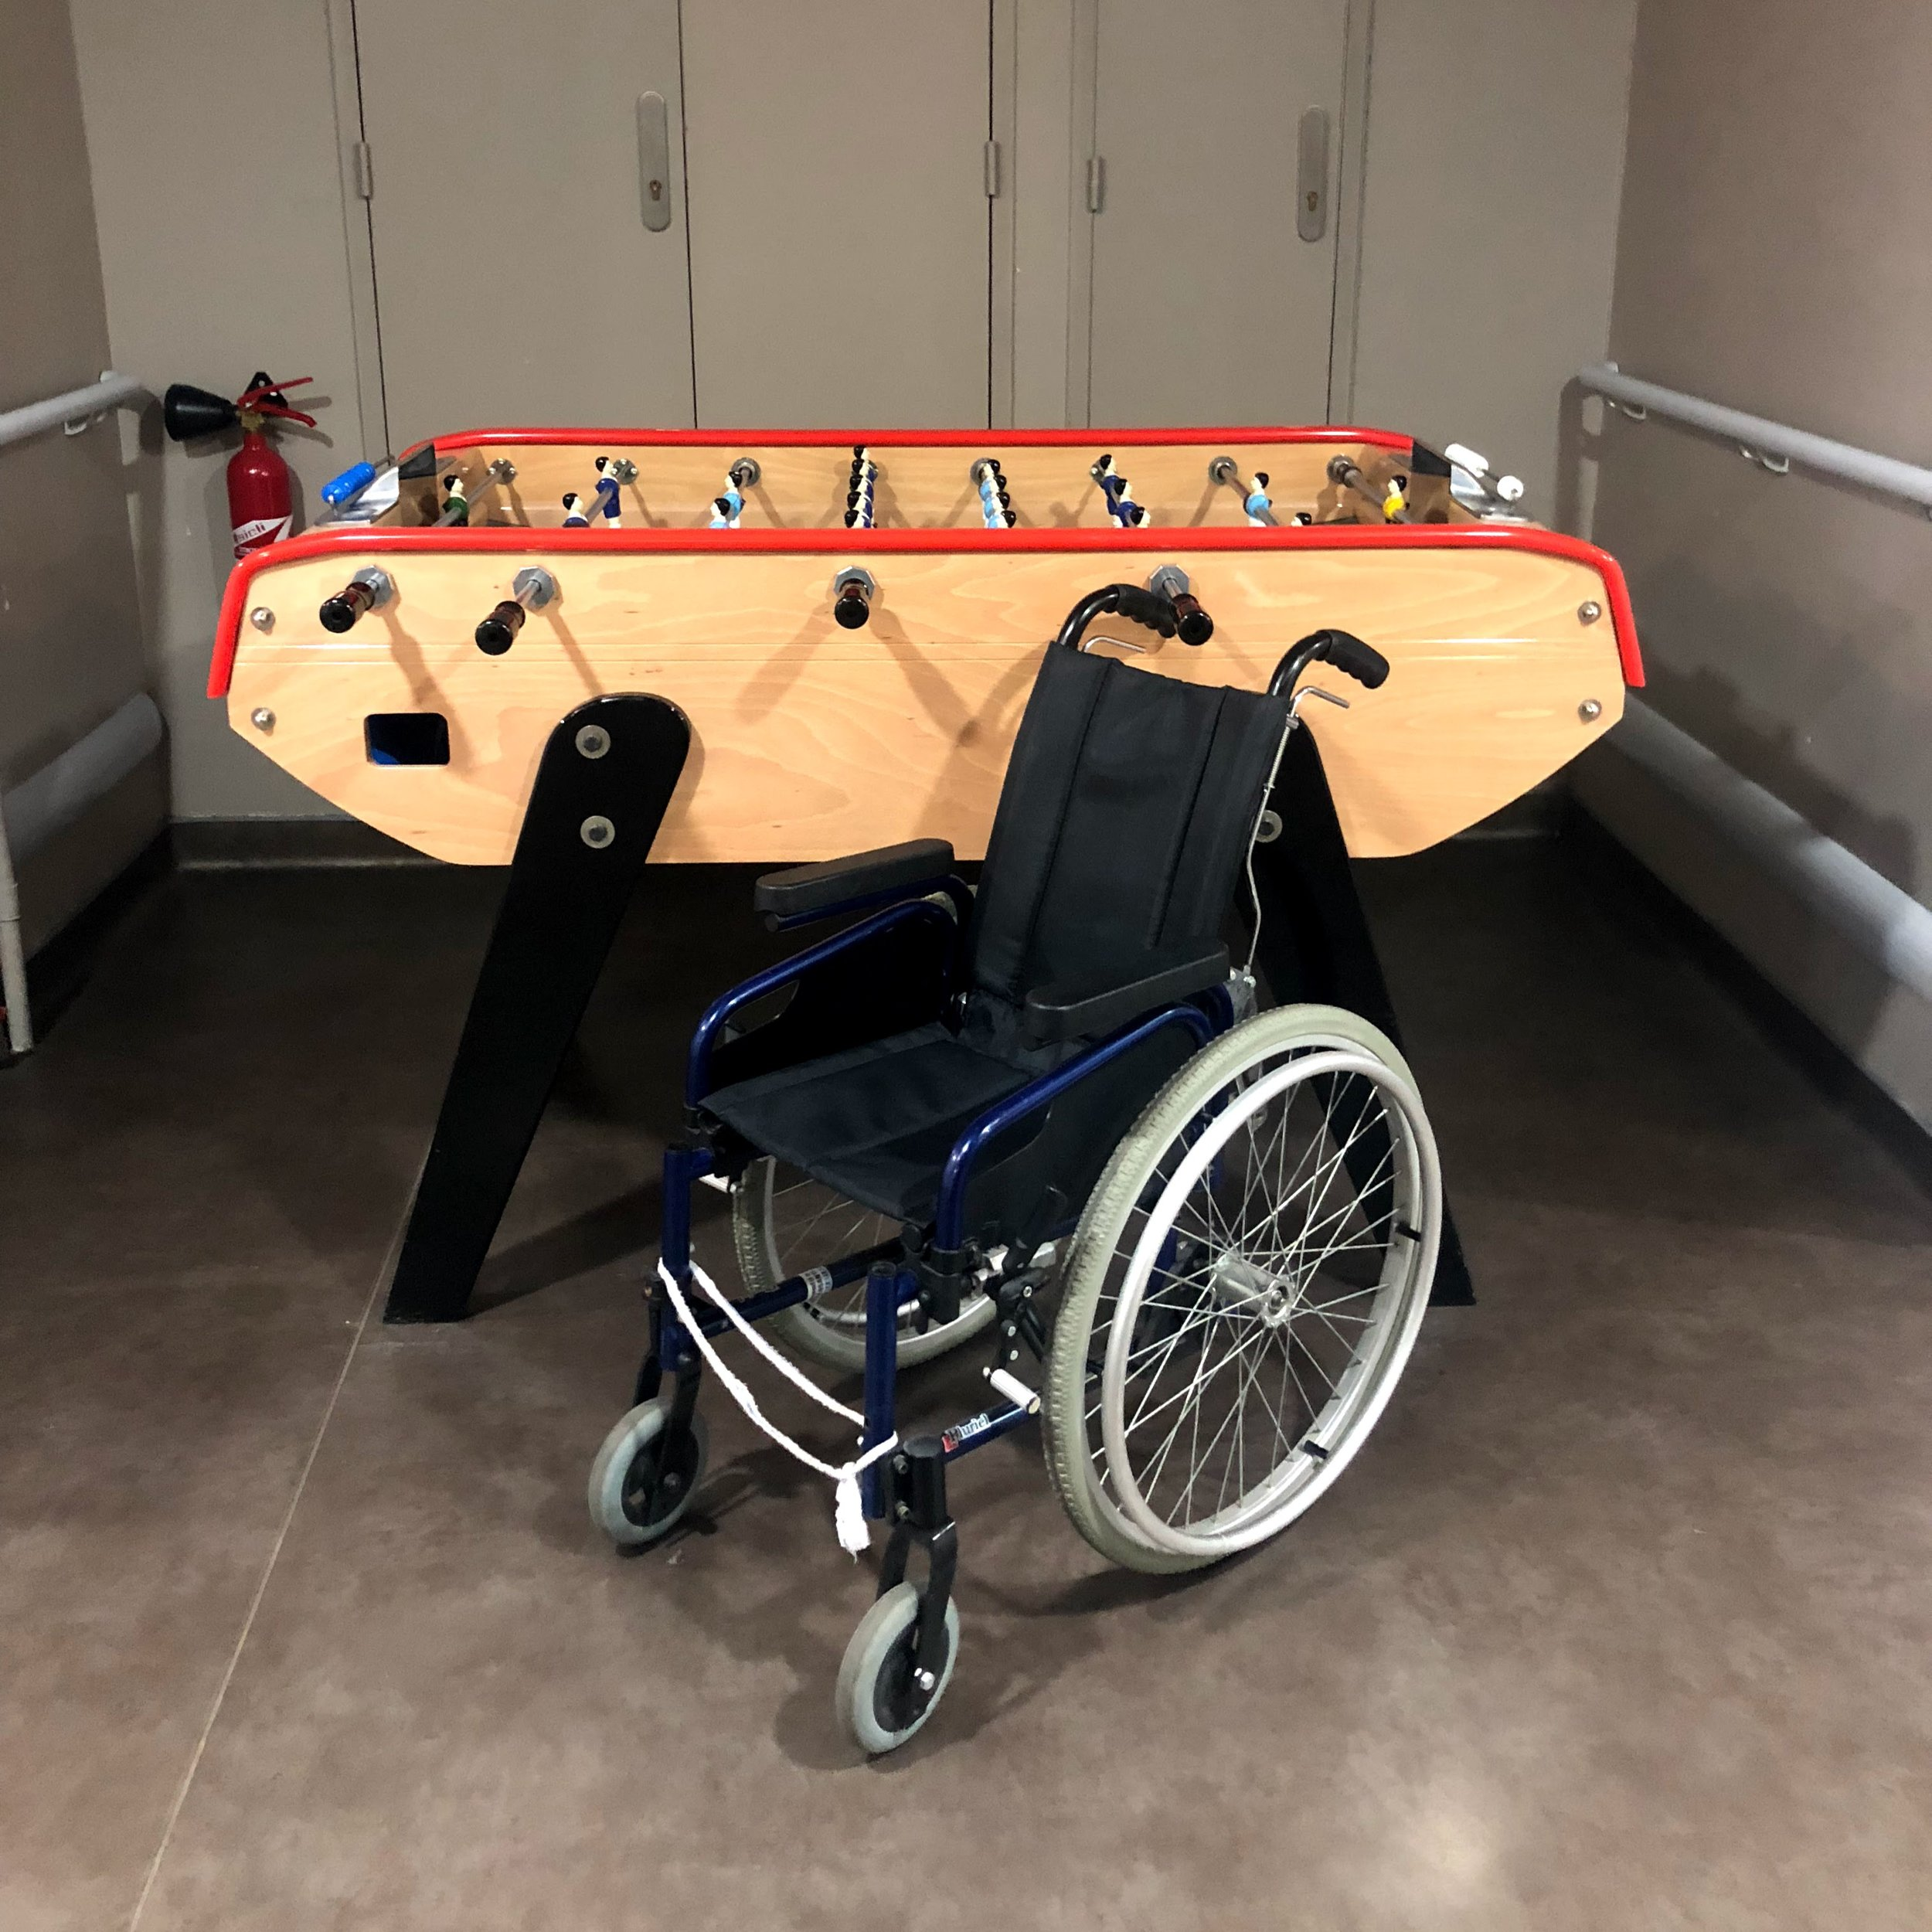 Some of the kids are on wheelchairs because chemotherapy treatments can also lead to joint lesions, especially on the knees.